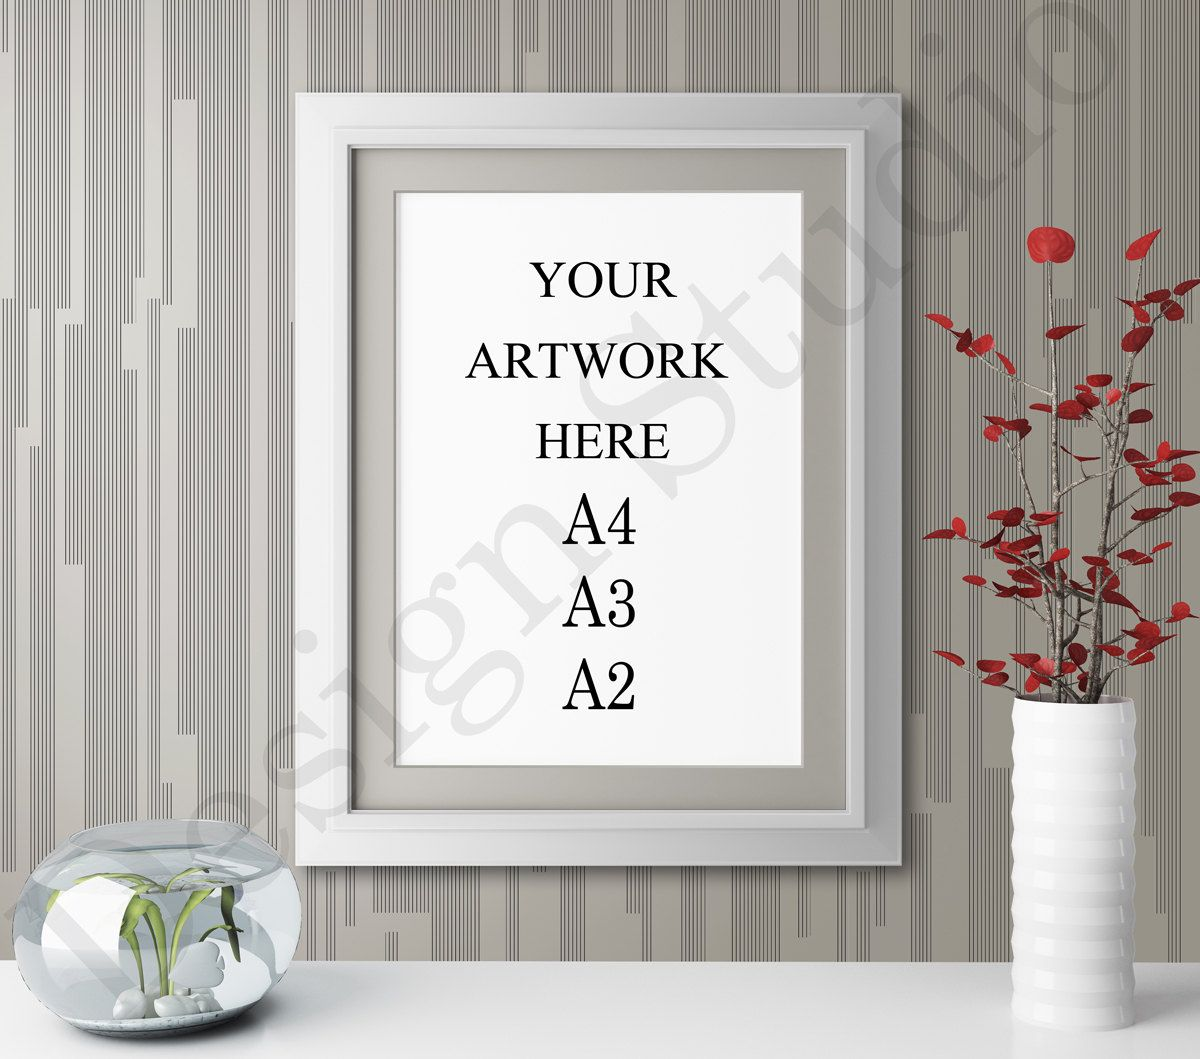 A2 White Frame A4 A3 A2 Vertical White Frame Mockup Wallpaper Background Etsy